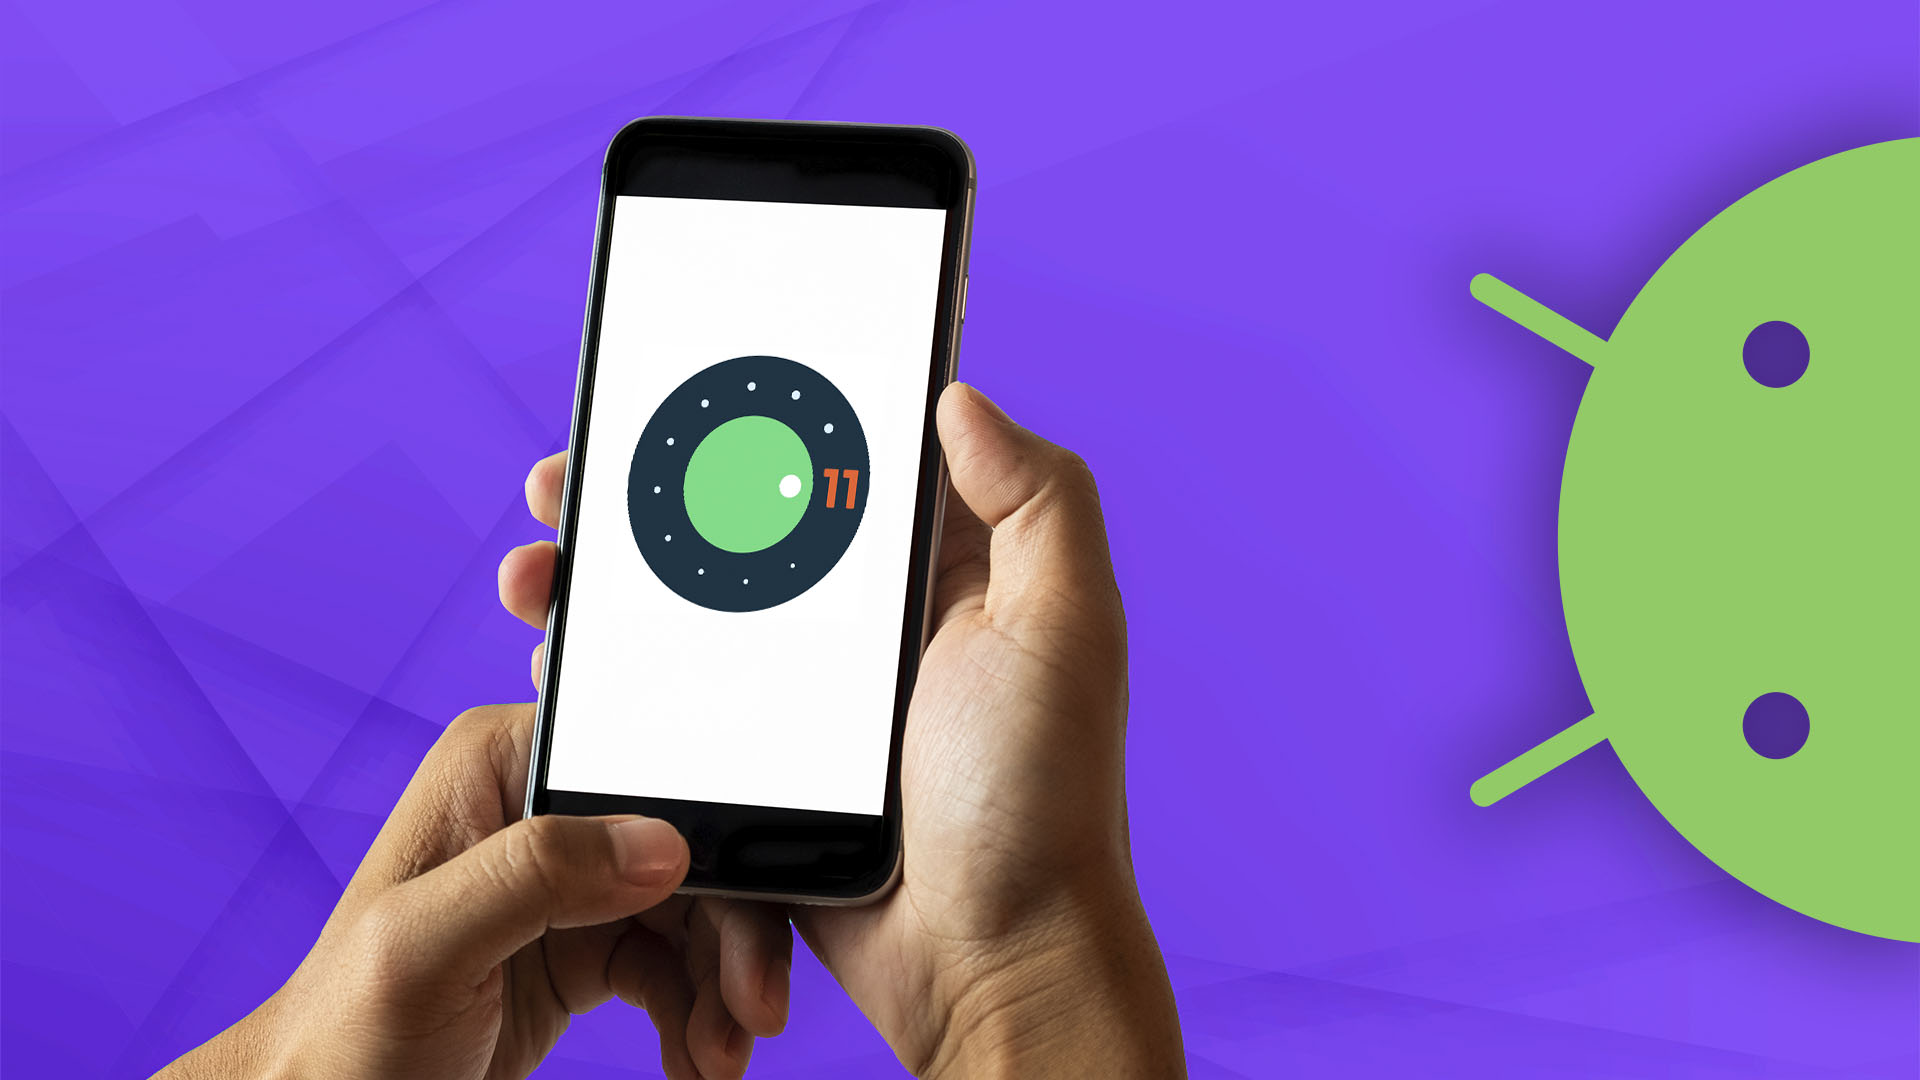 Smartphone, Betriebssystem, Google, Android, Google Android, Android 11, Google Android 11, Android 11 Beta, Android Figur, Android Männchen, Android Logo, Bugdroid